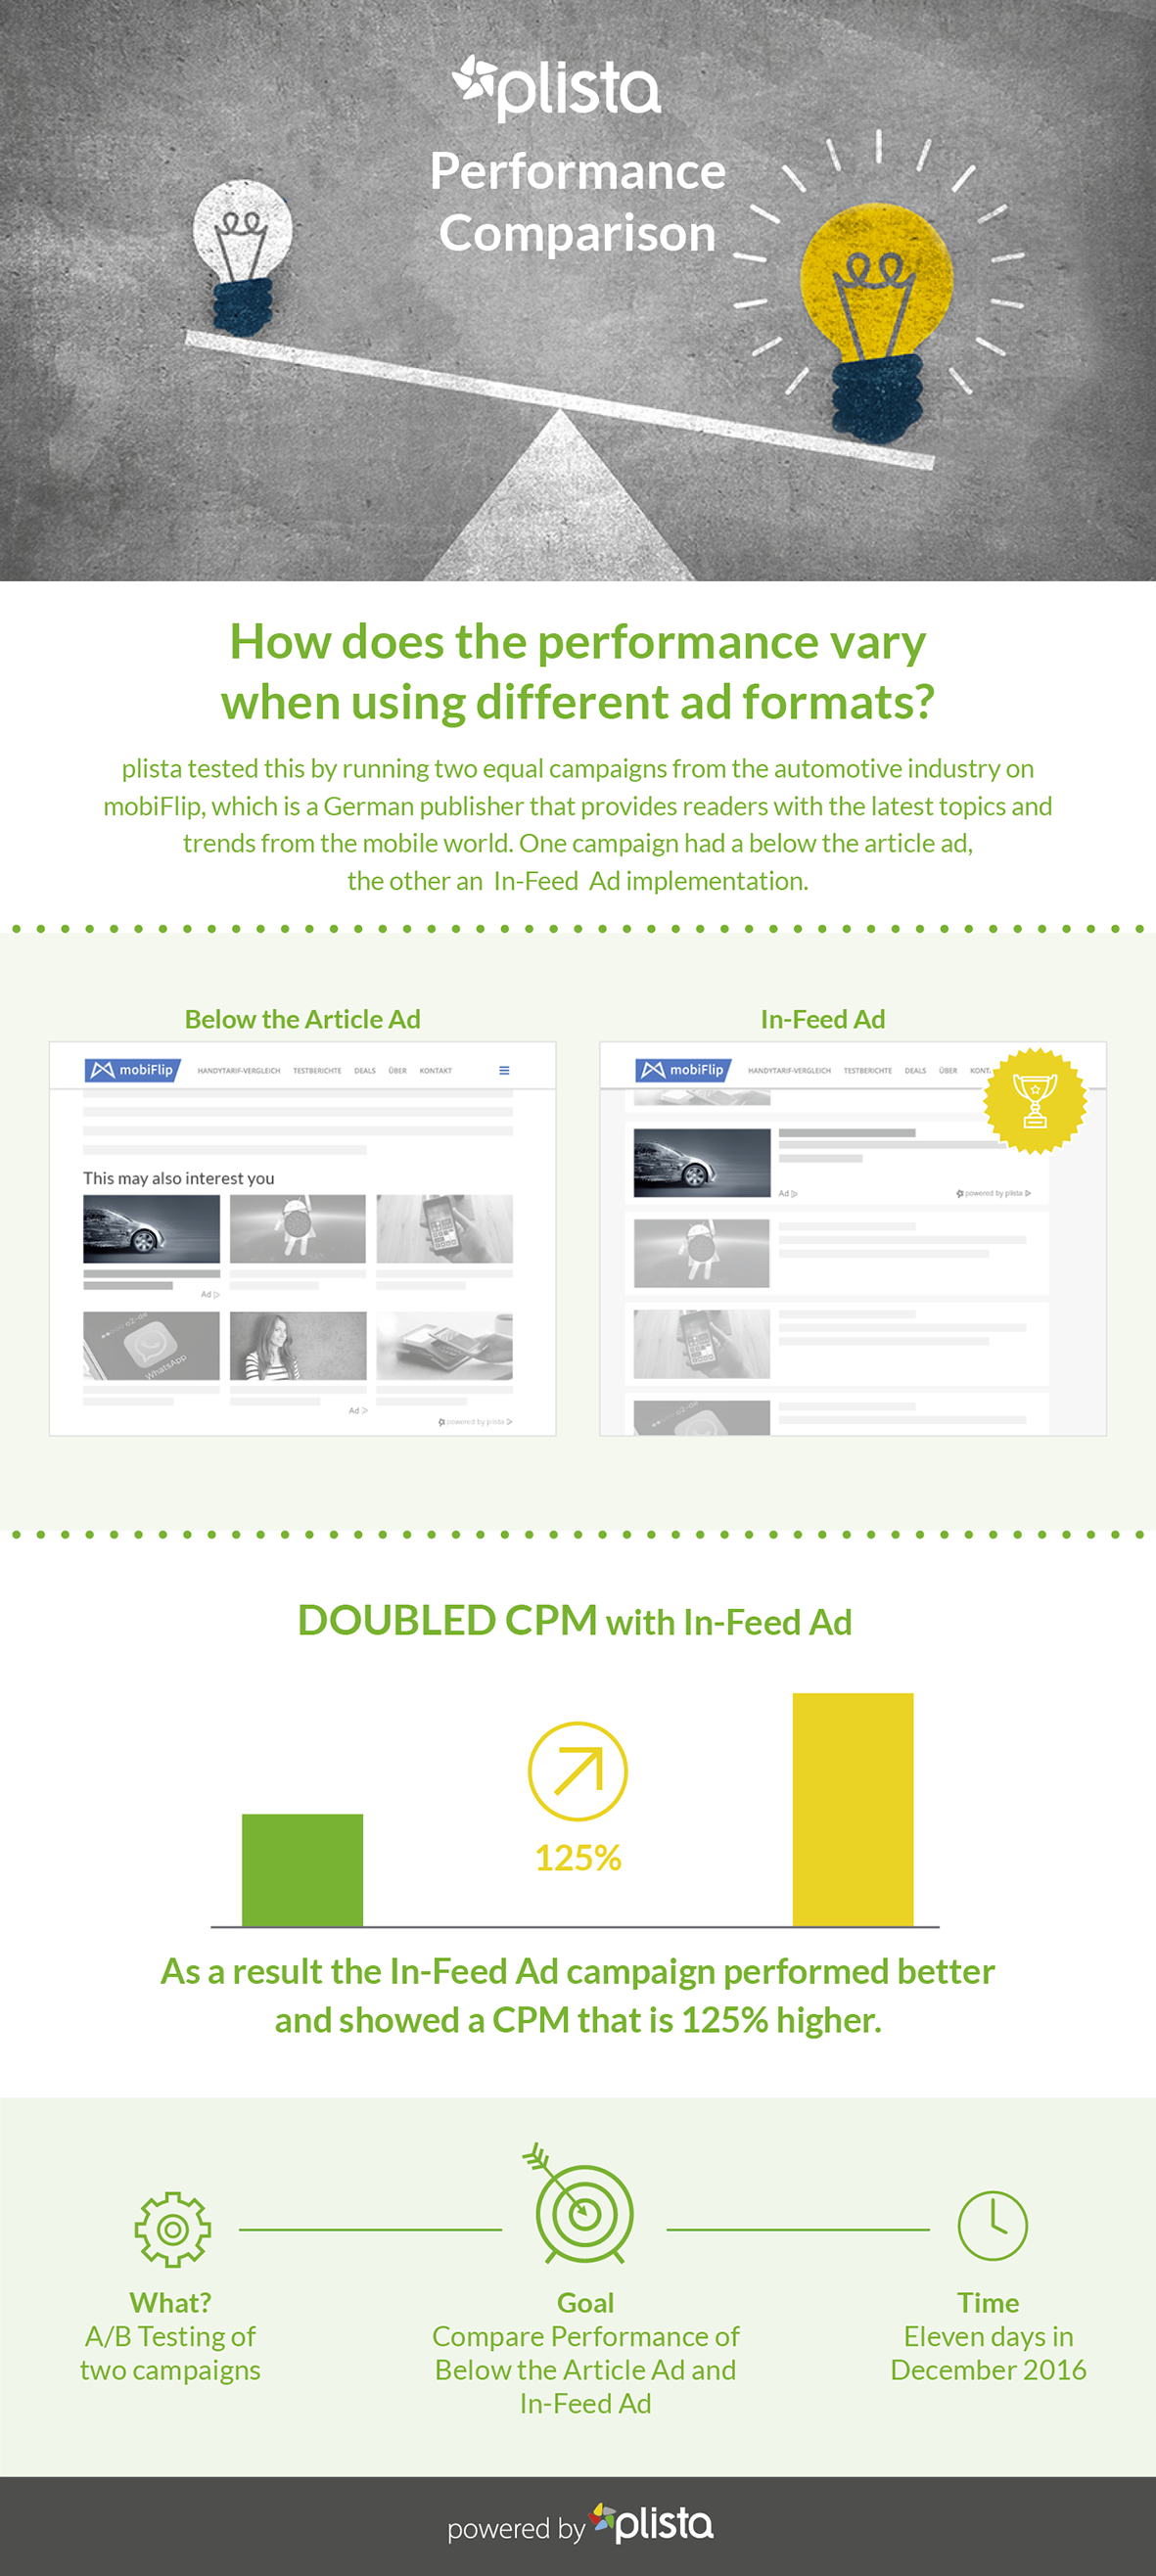 In this image you can see a Case Study about Performance Optimization with In-Feed Ad